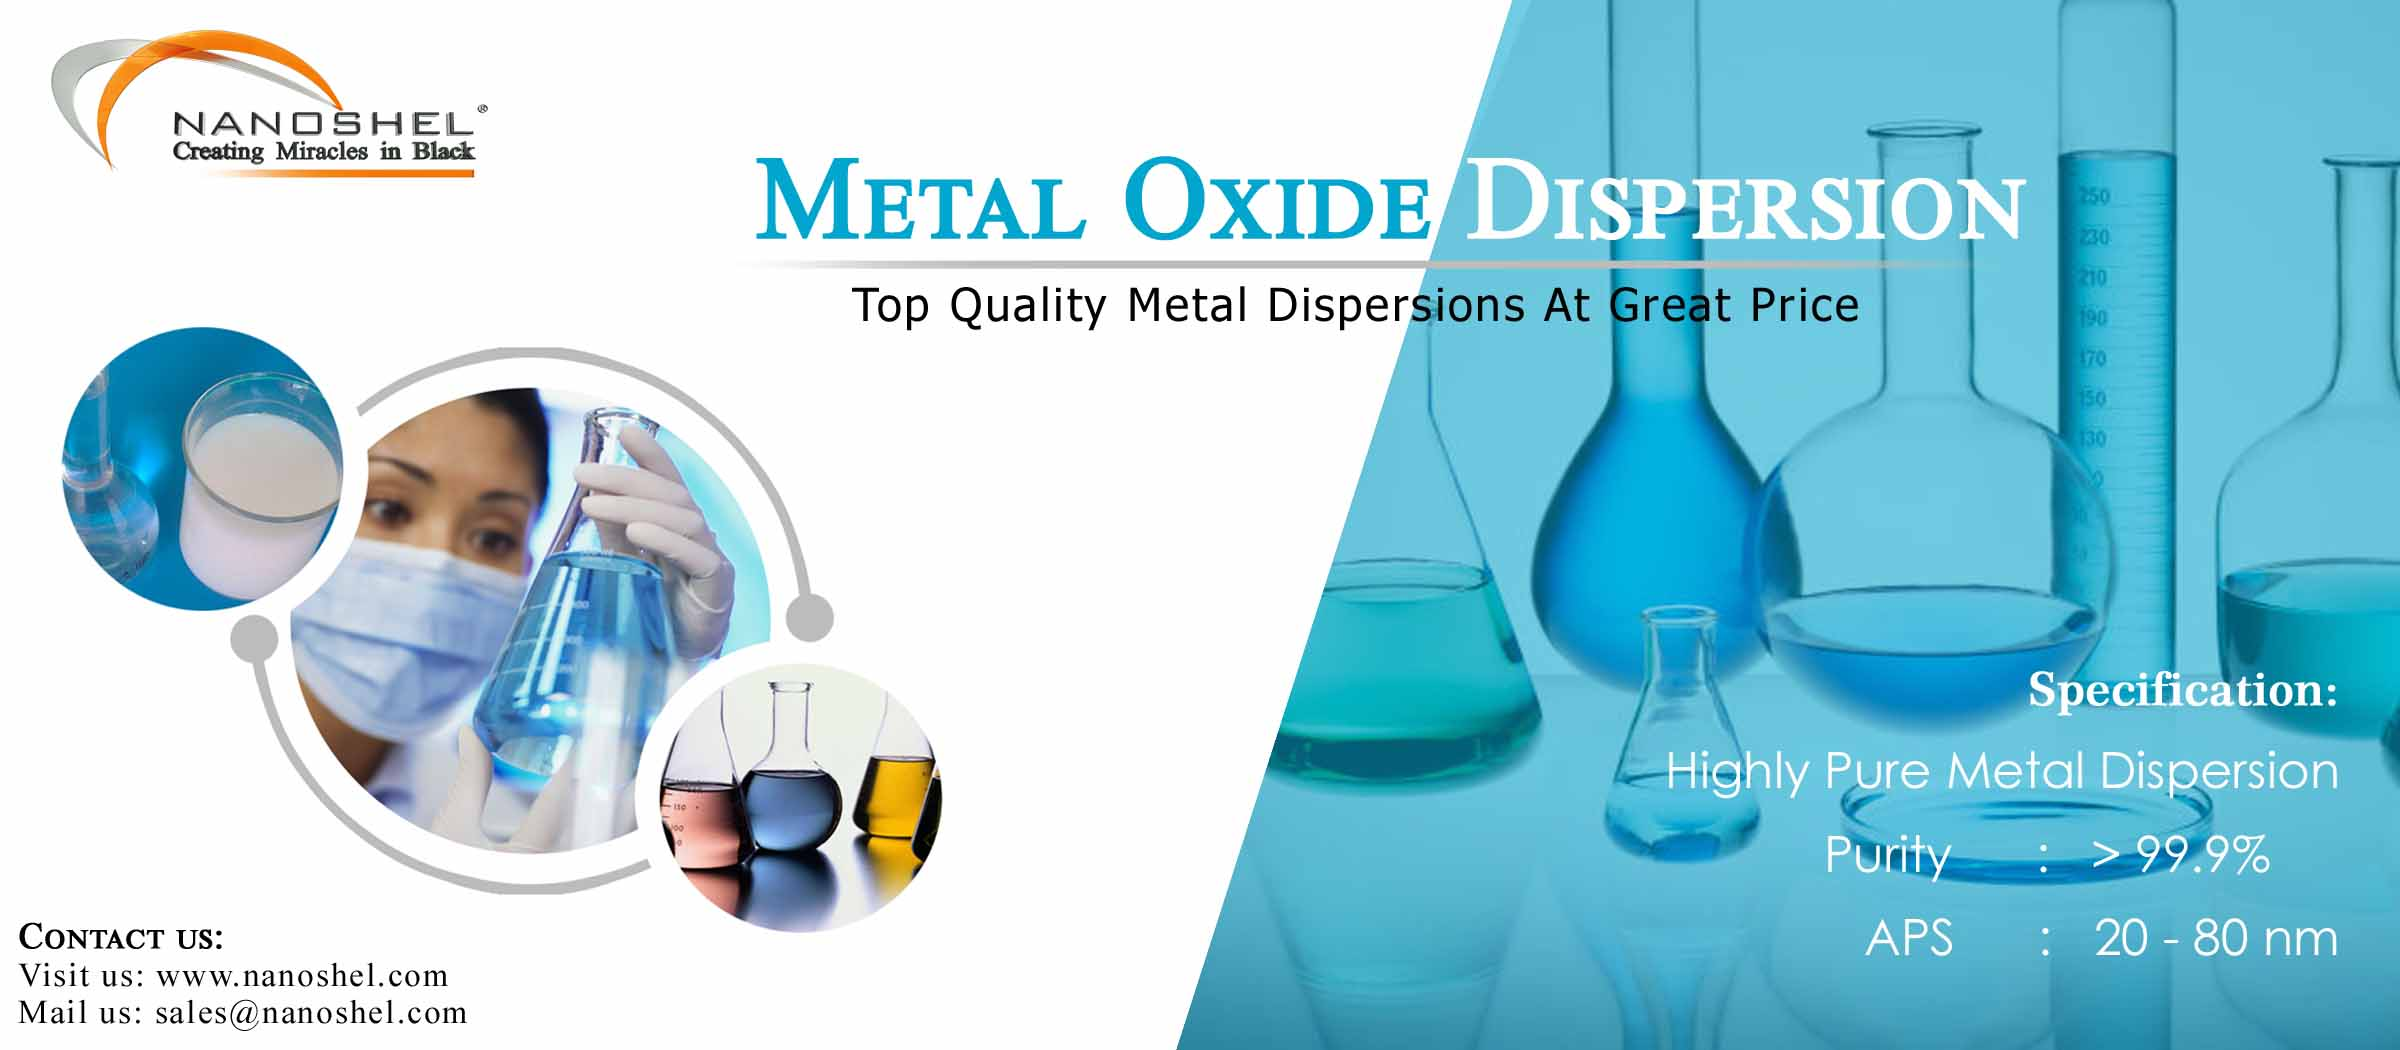 Titanium Dioxide Dispersion